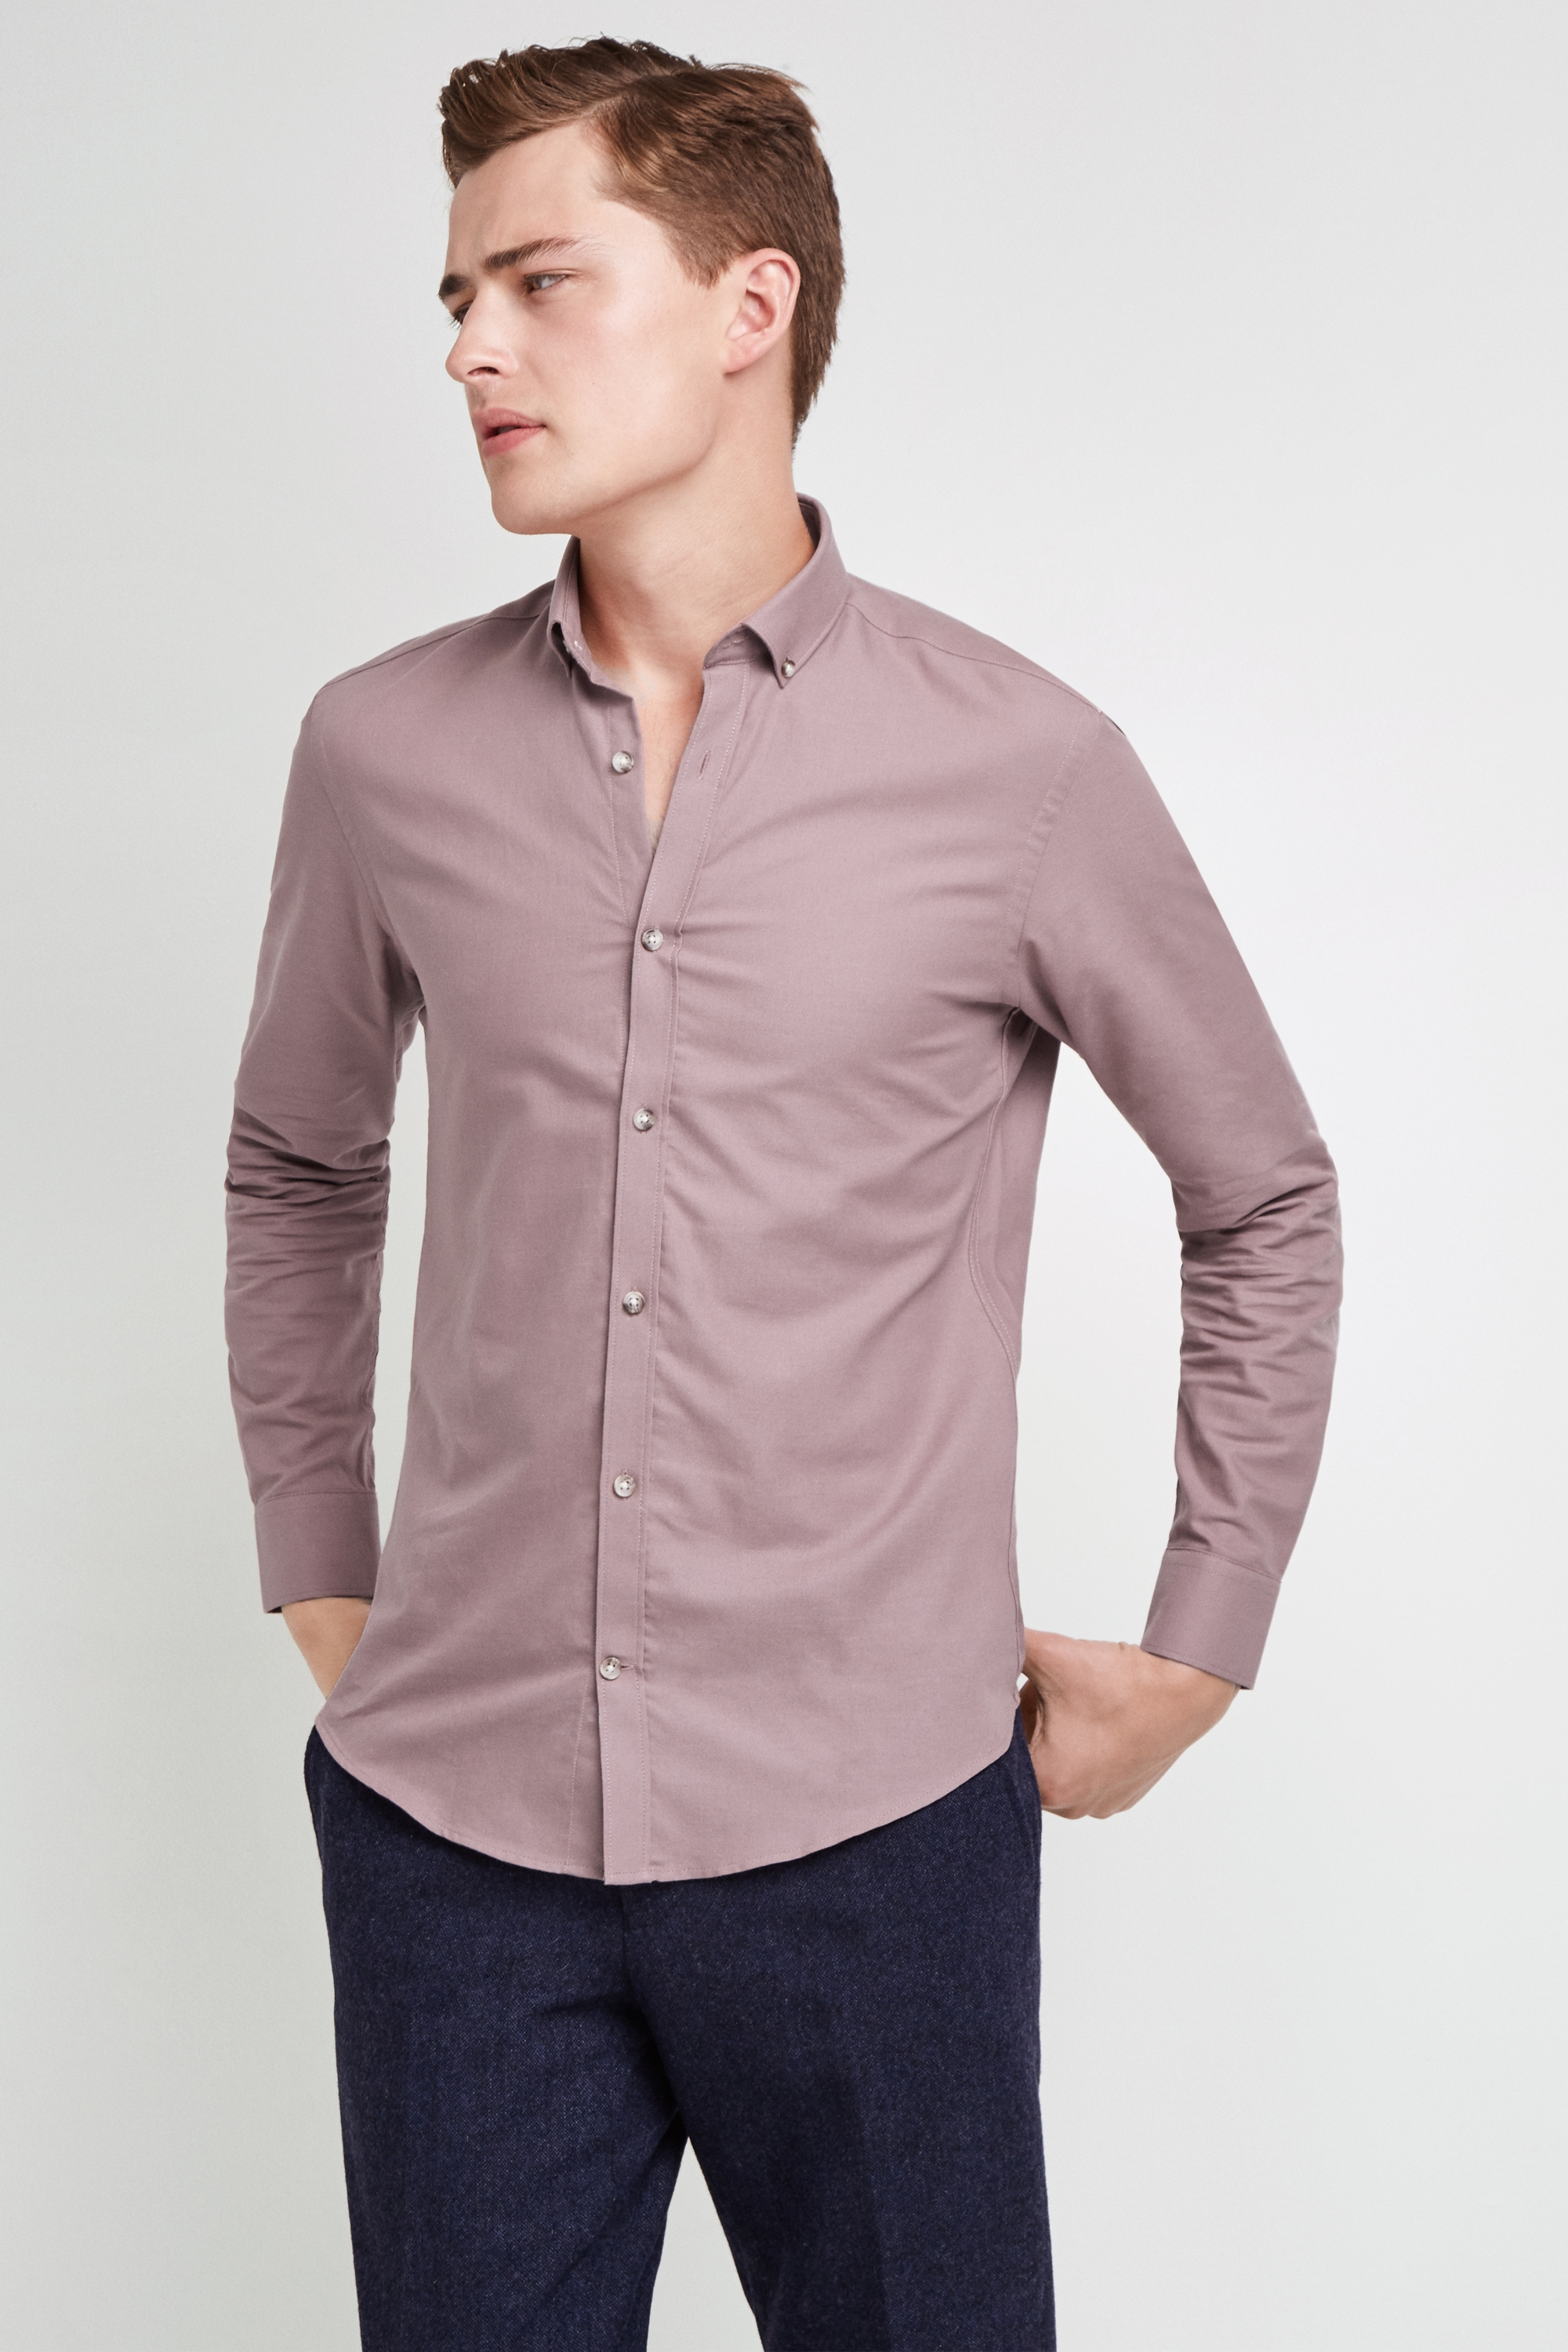 Moss Bros Moss London Skinny Fit Pink Single Cuff Oxford Button Down Casual Shirt